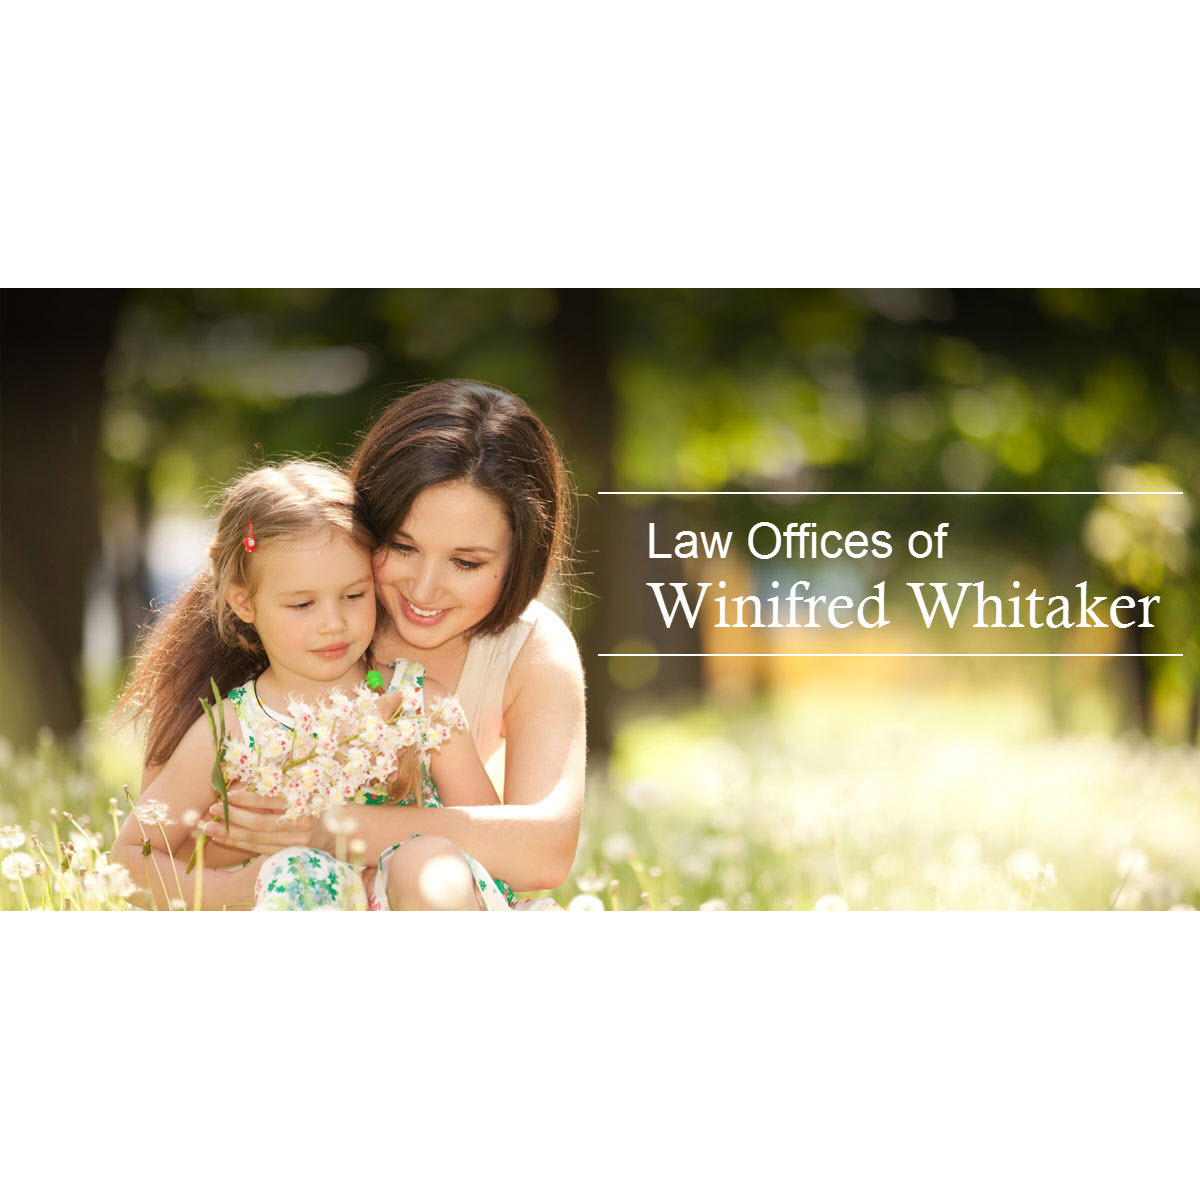 Law Offices of Winifred Whitaker - ad image